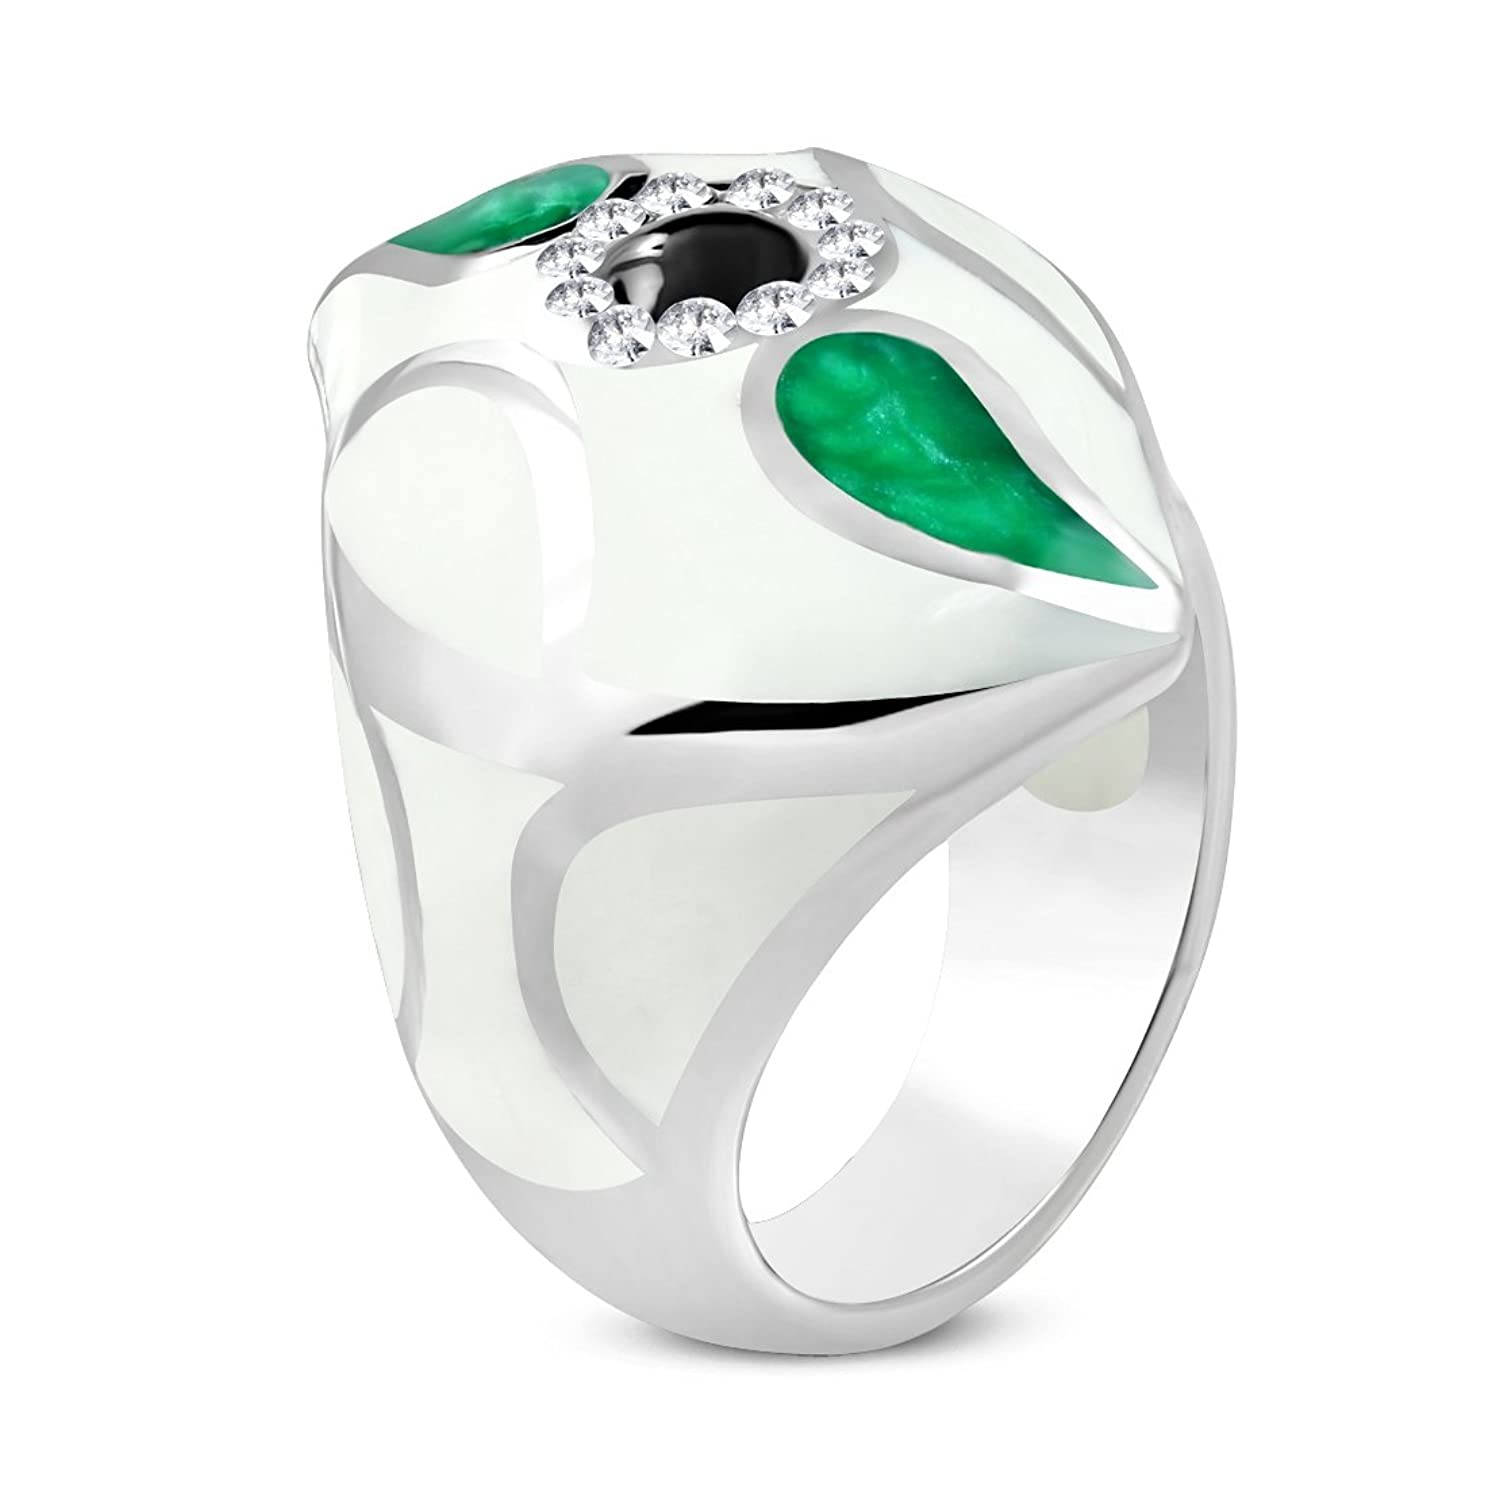 Stainless Steel Colorful White Enameled Black Flower Oval Cocktail Dome Ring with Clear CZ